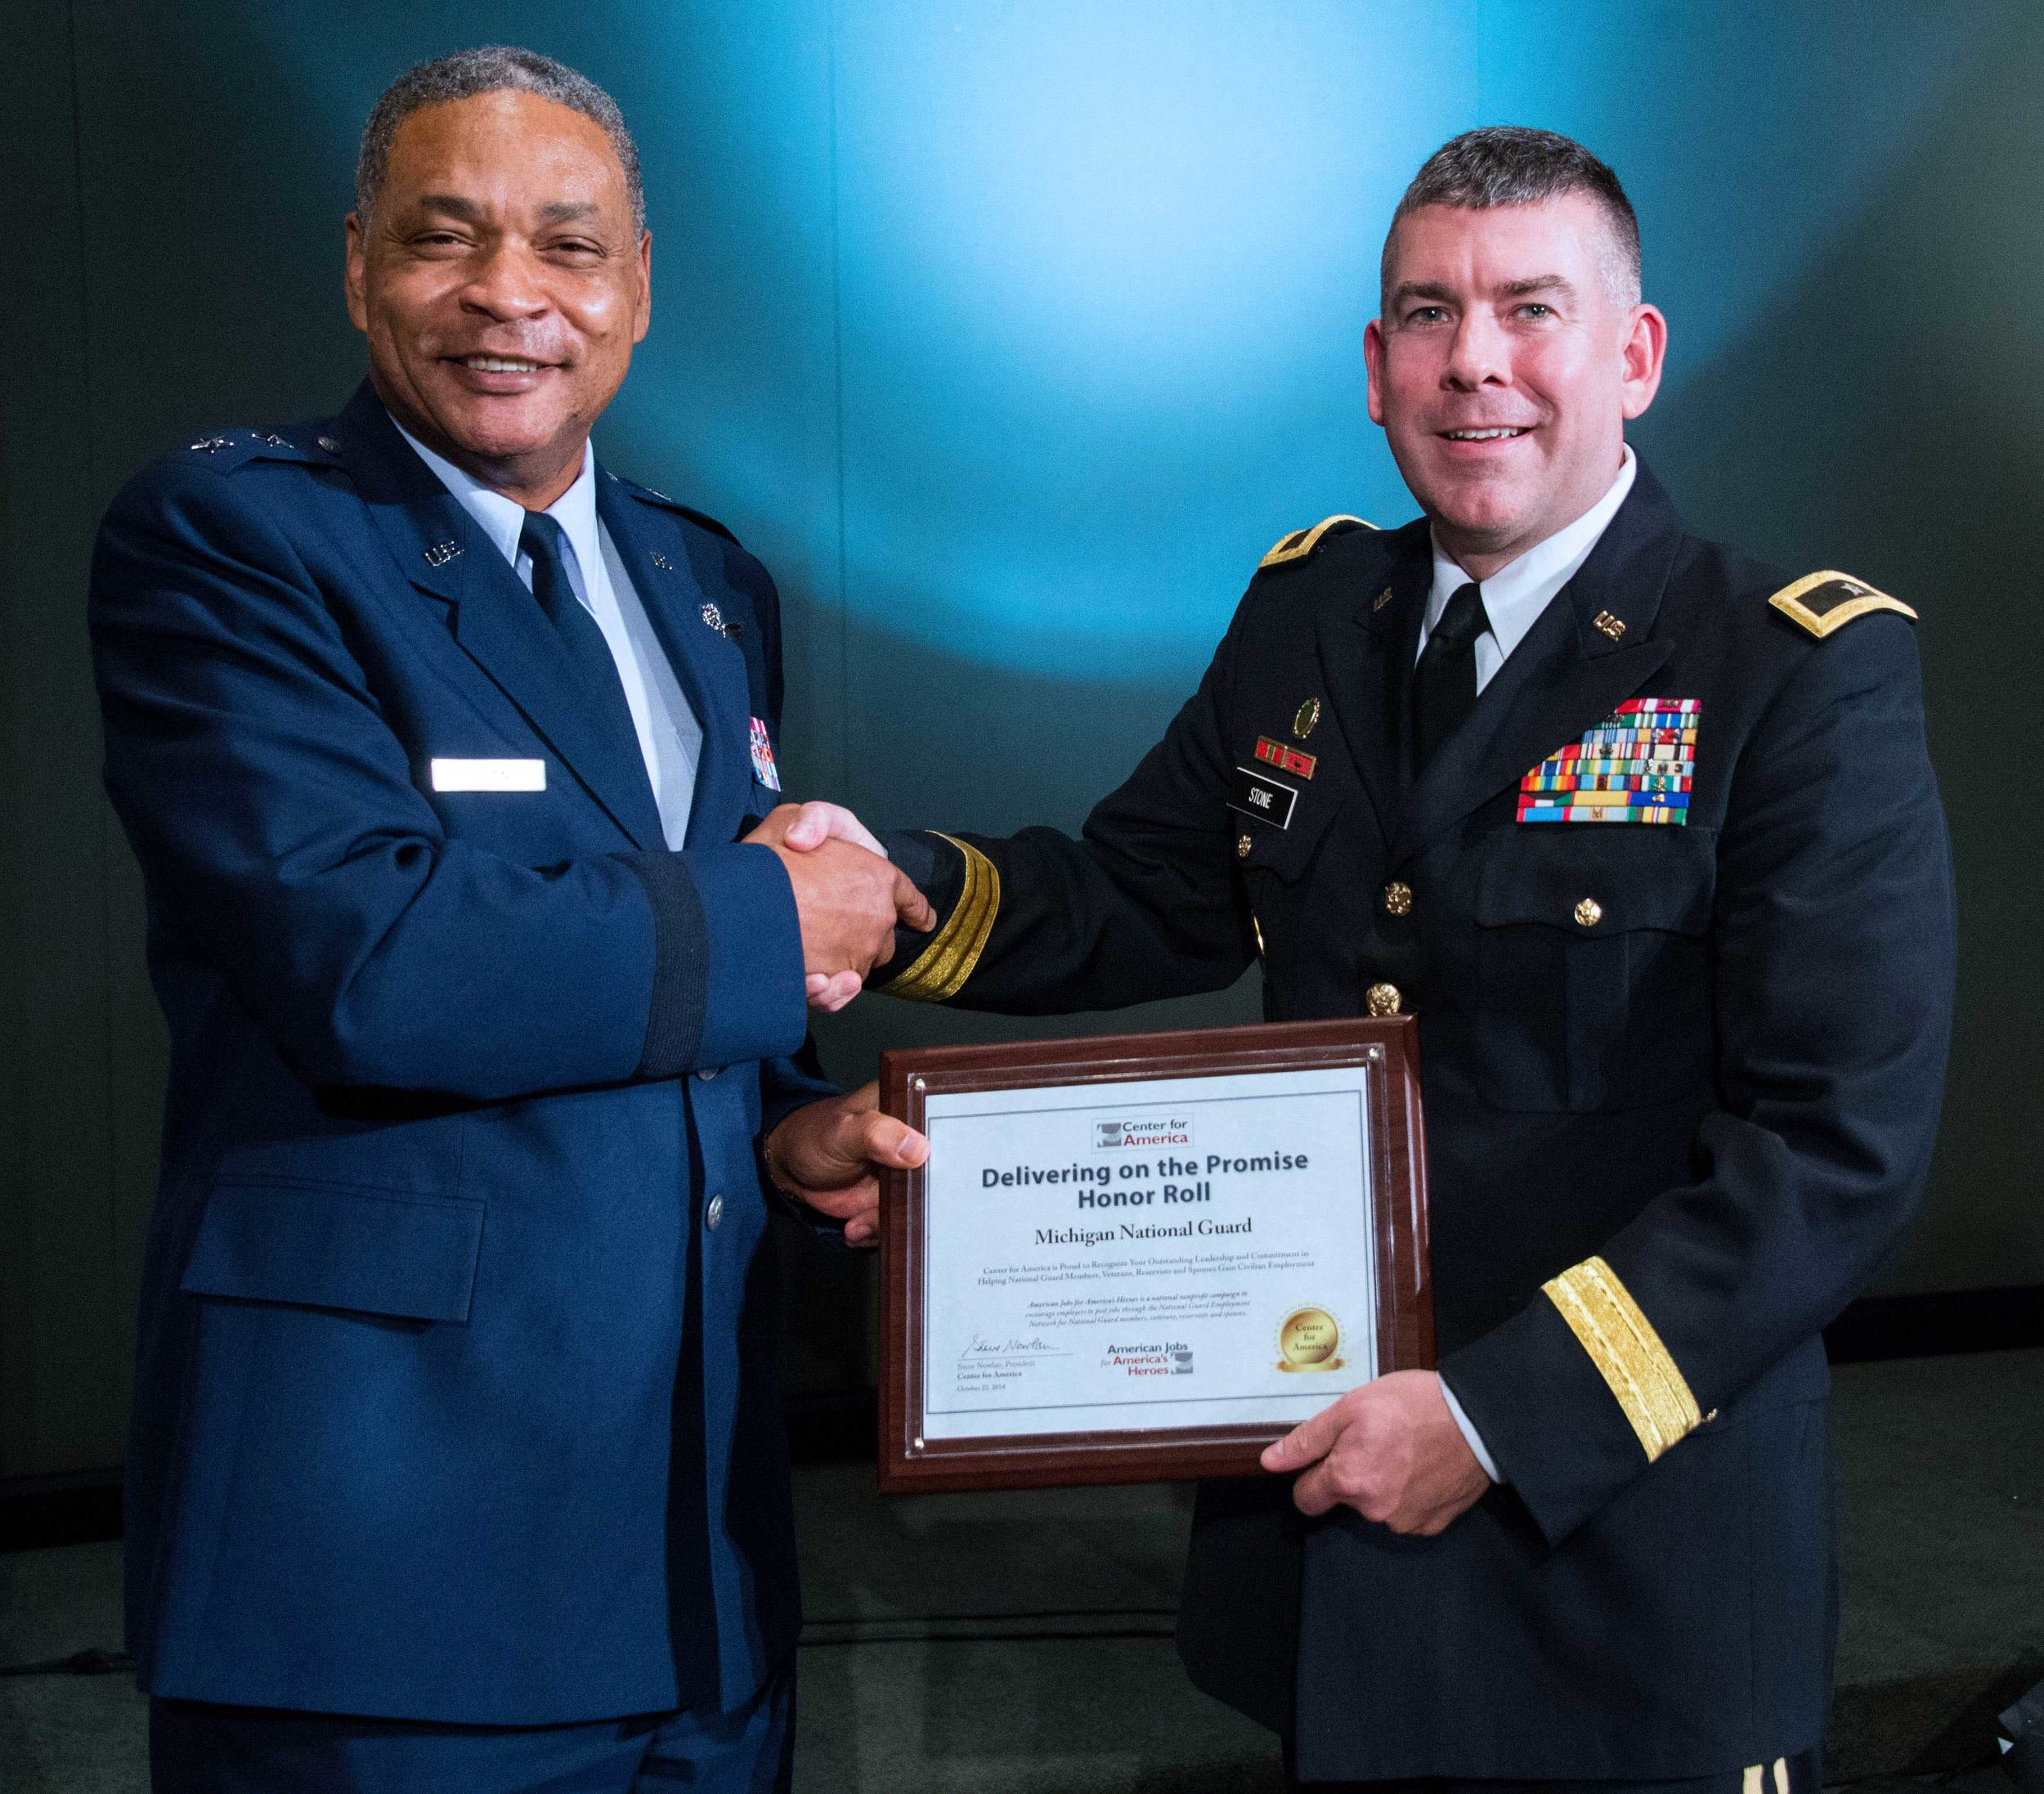 Major General Garry Dean presents the CFA Award to Brigadier General Michael Stone, Michigan National Guard